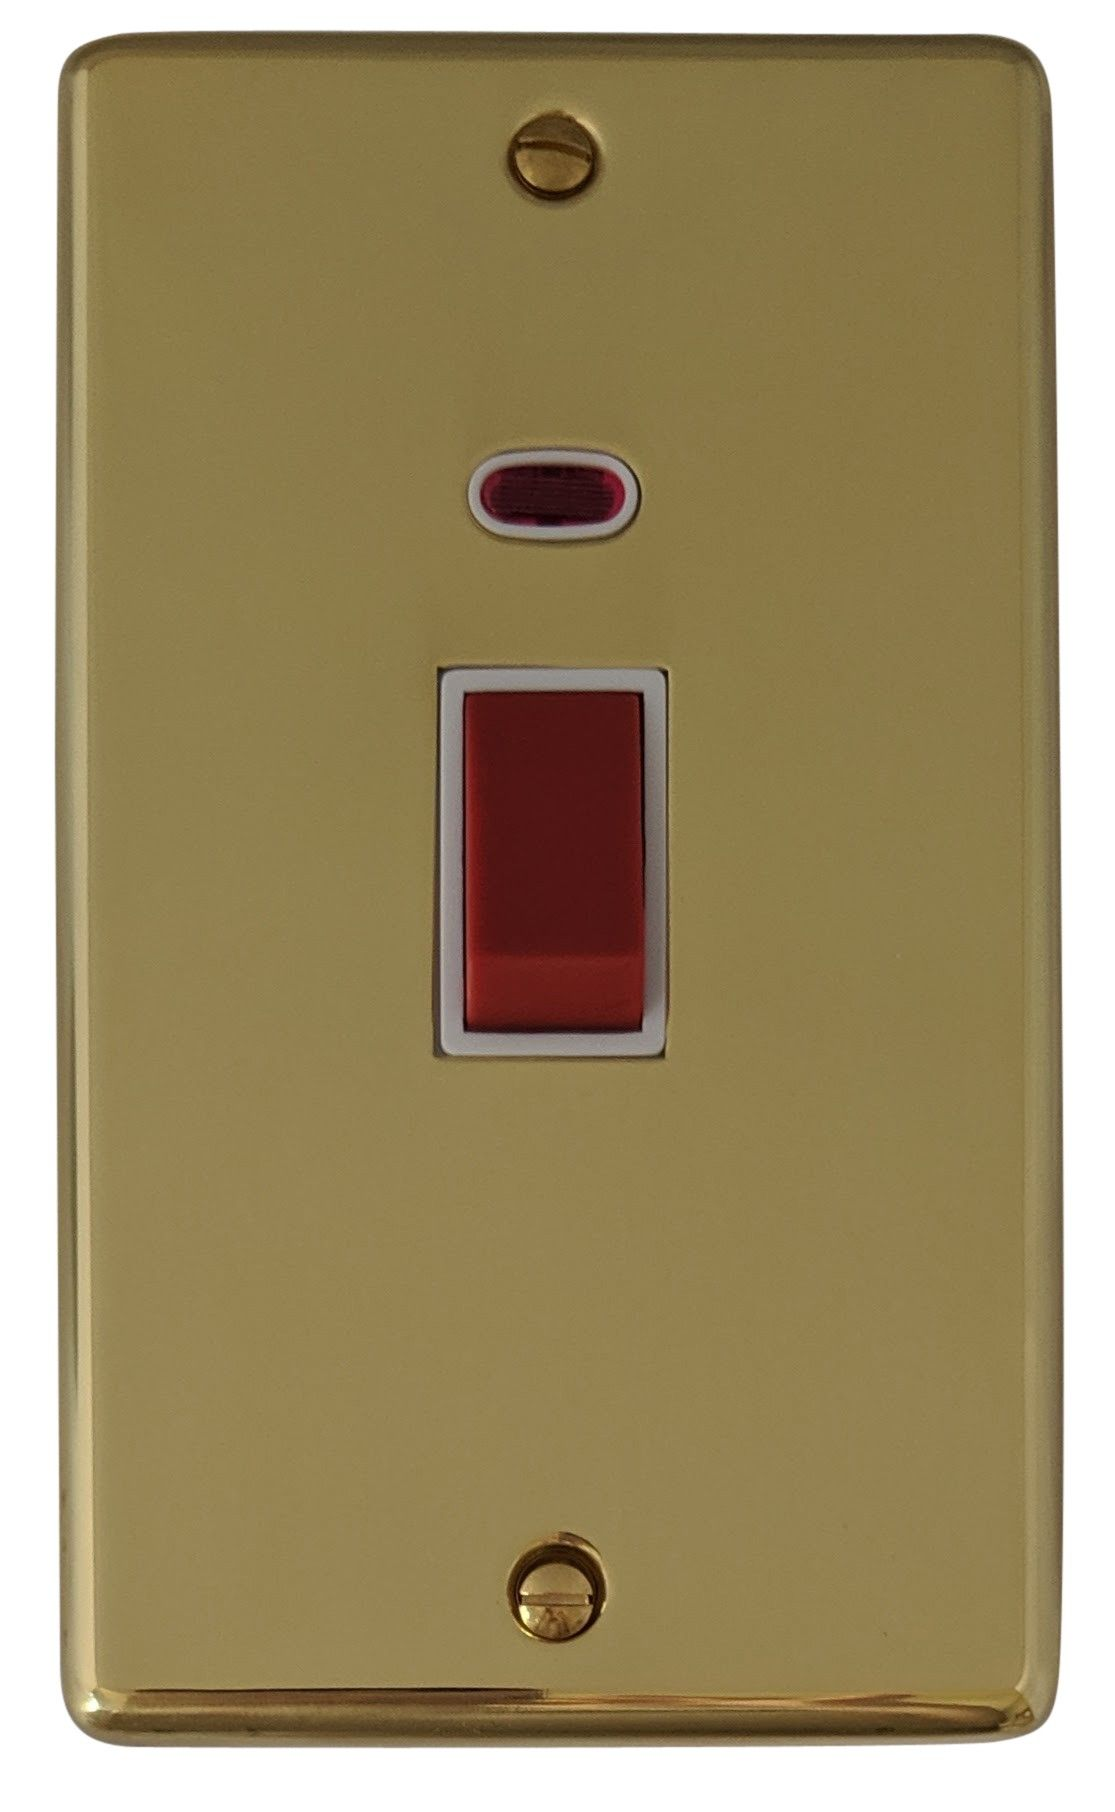 G&H CB28W Standard Plate Polished Brass 45 Amp DP Cooker Switch & Neon Vertical Plate